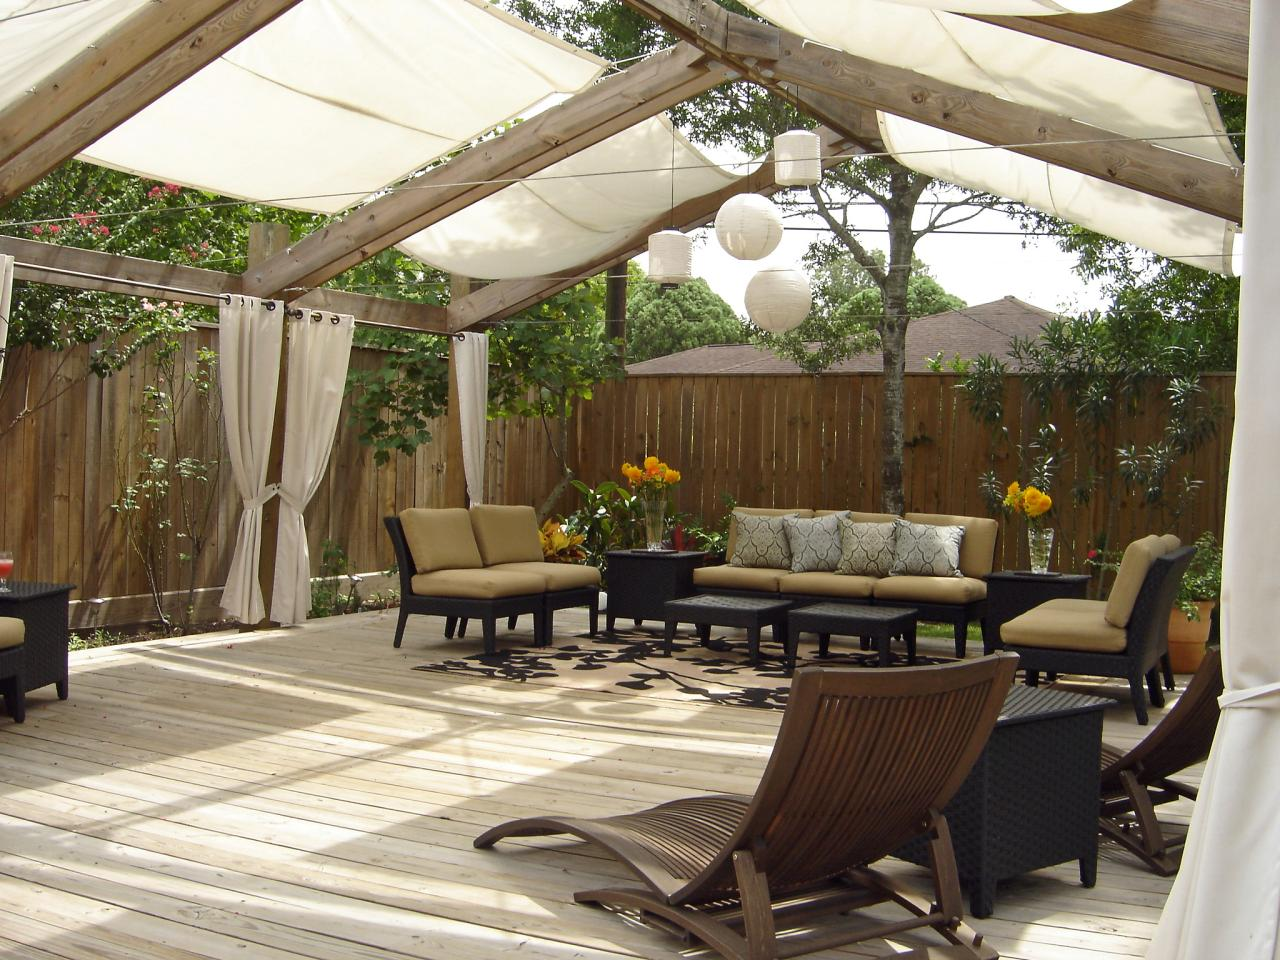 Modern Country & 5 DIY Shade Ideas for Your Deck or Patio | HGTVu0027s Decorating ...